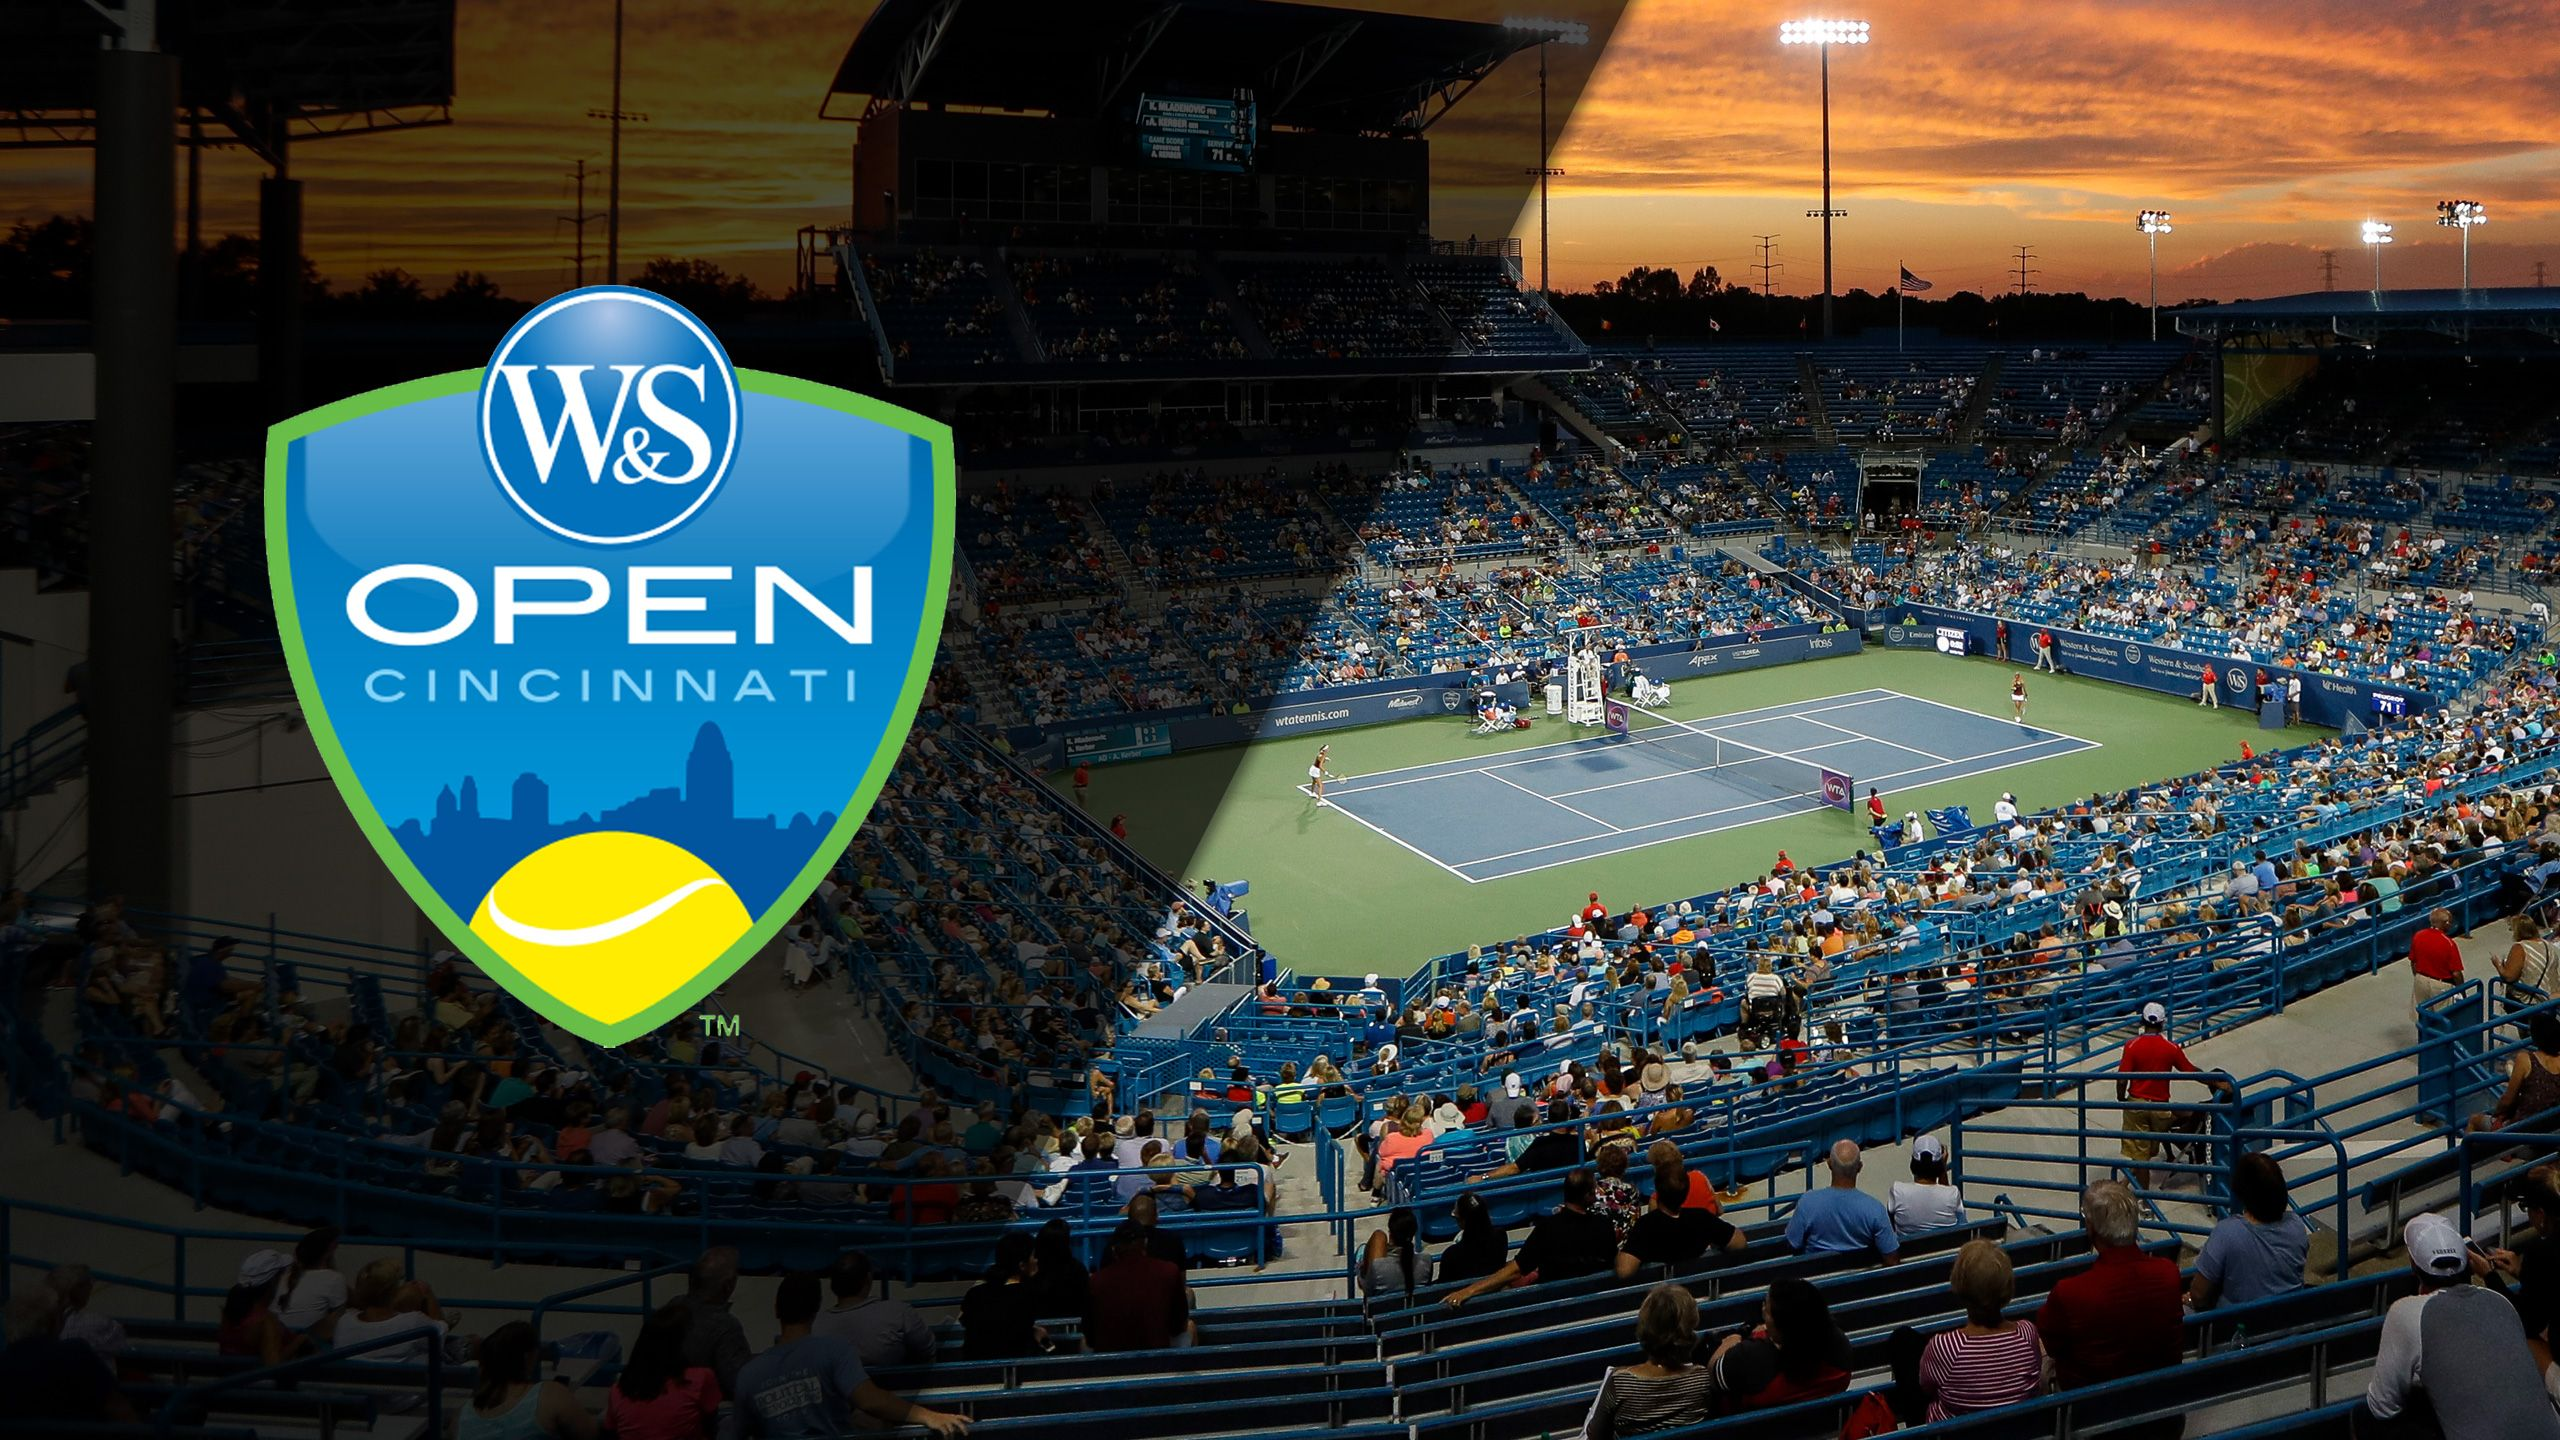 2017 US Open Series - Western & Southern Open (Men's & Women's Quarterfinals)